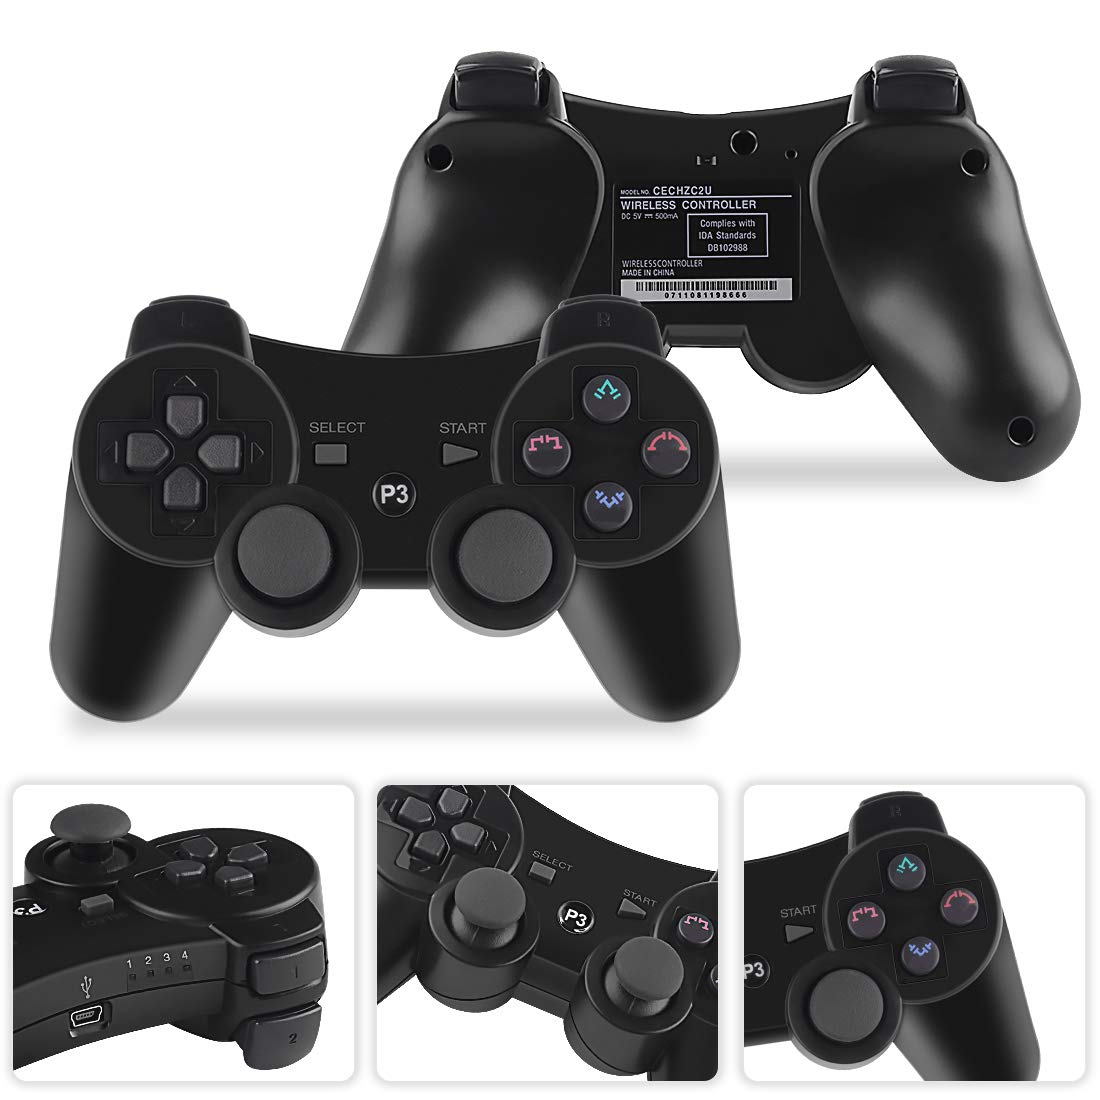 Molgegk 2 Packs Wireless Bluetooth Controller for PS3 Playstation 3 Double Shock Black and Black Bundled with USB Charge Cord